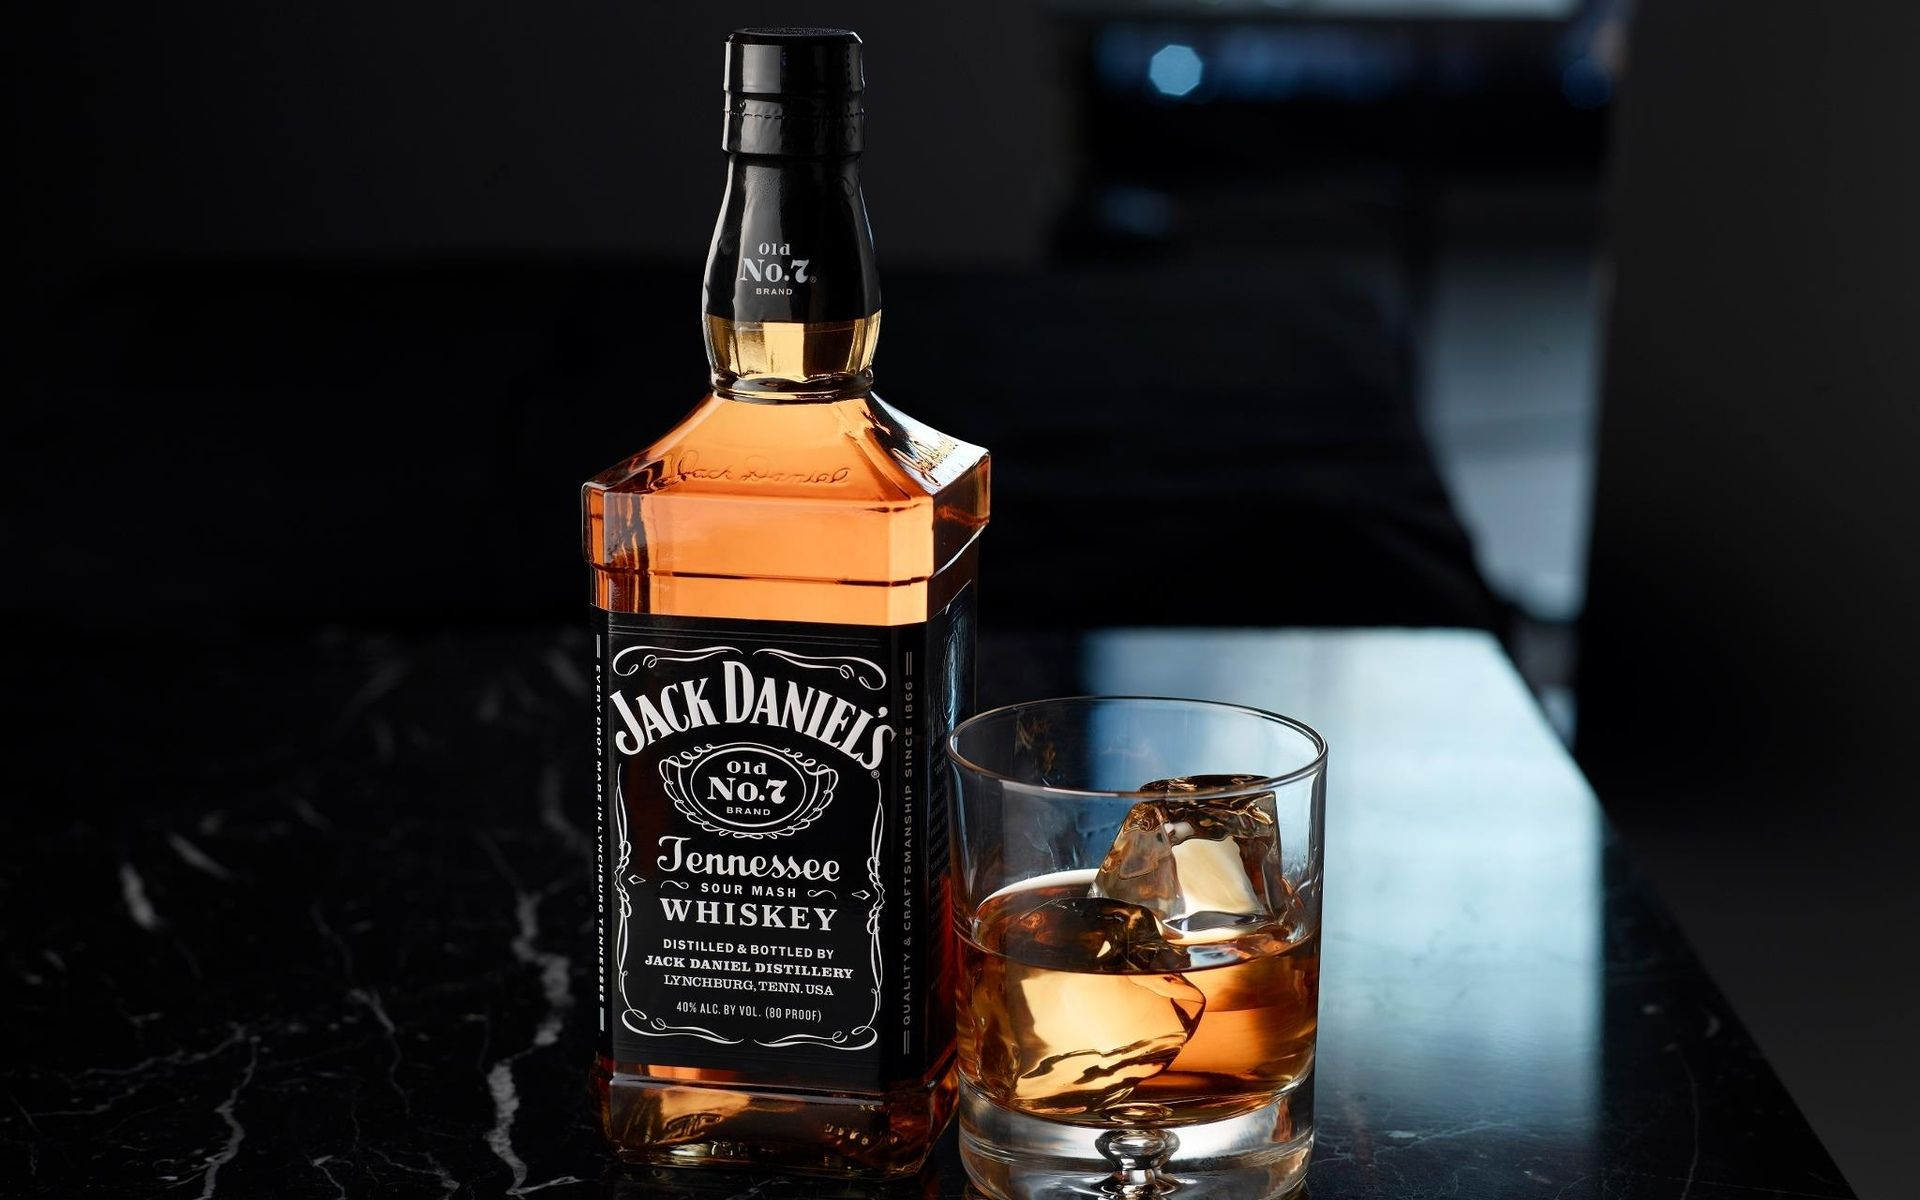 Jack daniels whiskey drink wallpaper high resolution wallpaper jack daniels whiskey drink wallpaper high resolution wallpaper full size voltagebd